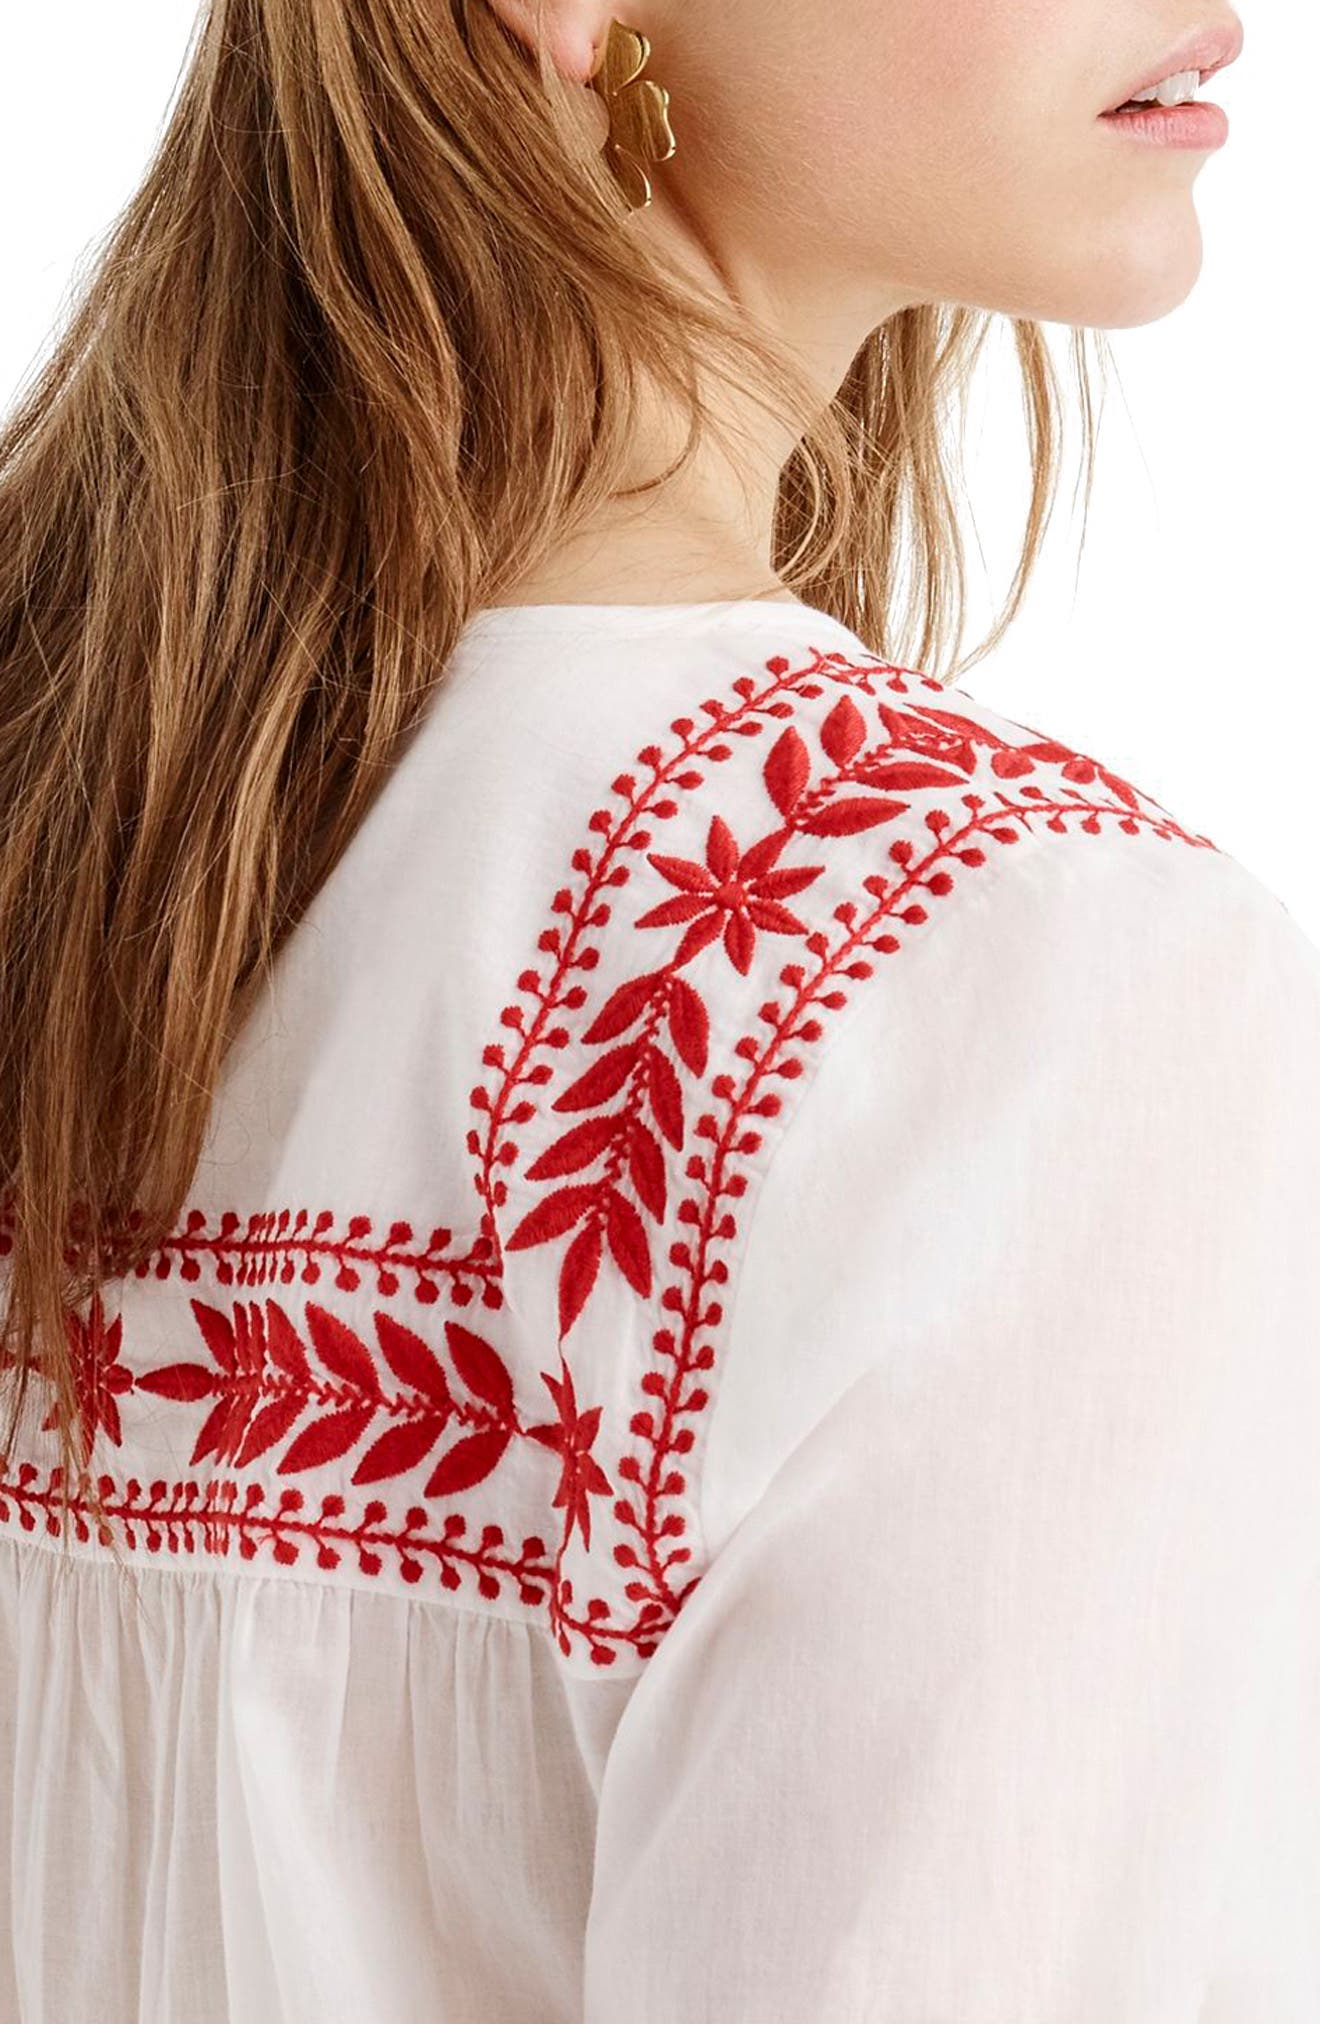 J.Crew Embroidered Semolina Top,                             Alternate thumbnail 5, color,                             White Red